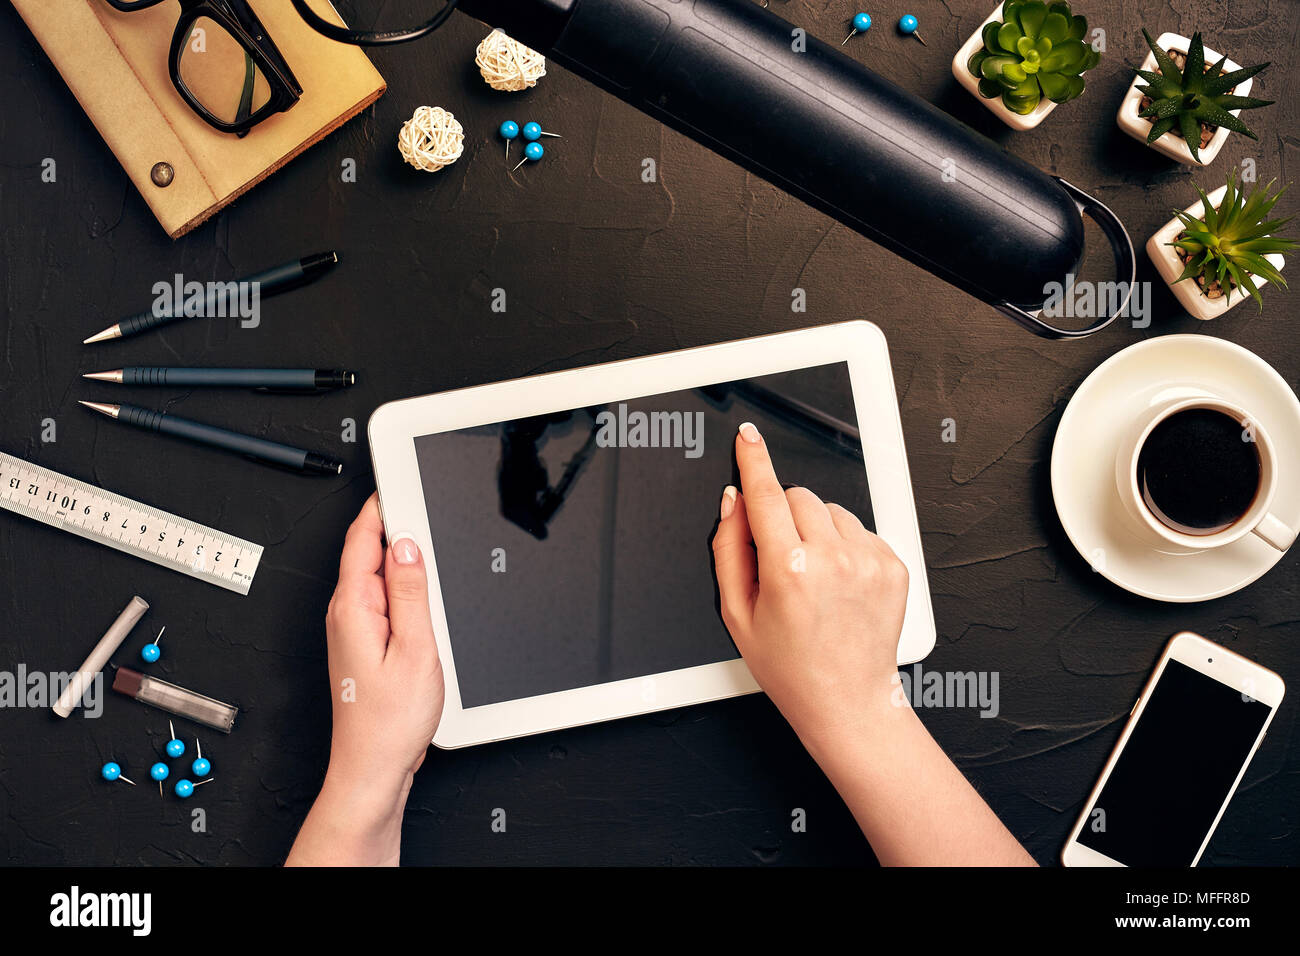 Architects tools stock photos architects tools stock images alamy architect working on blueprint architects workplace architectural project blueprints tablet pc malvernweather Image collections